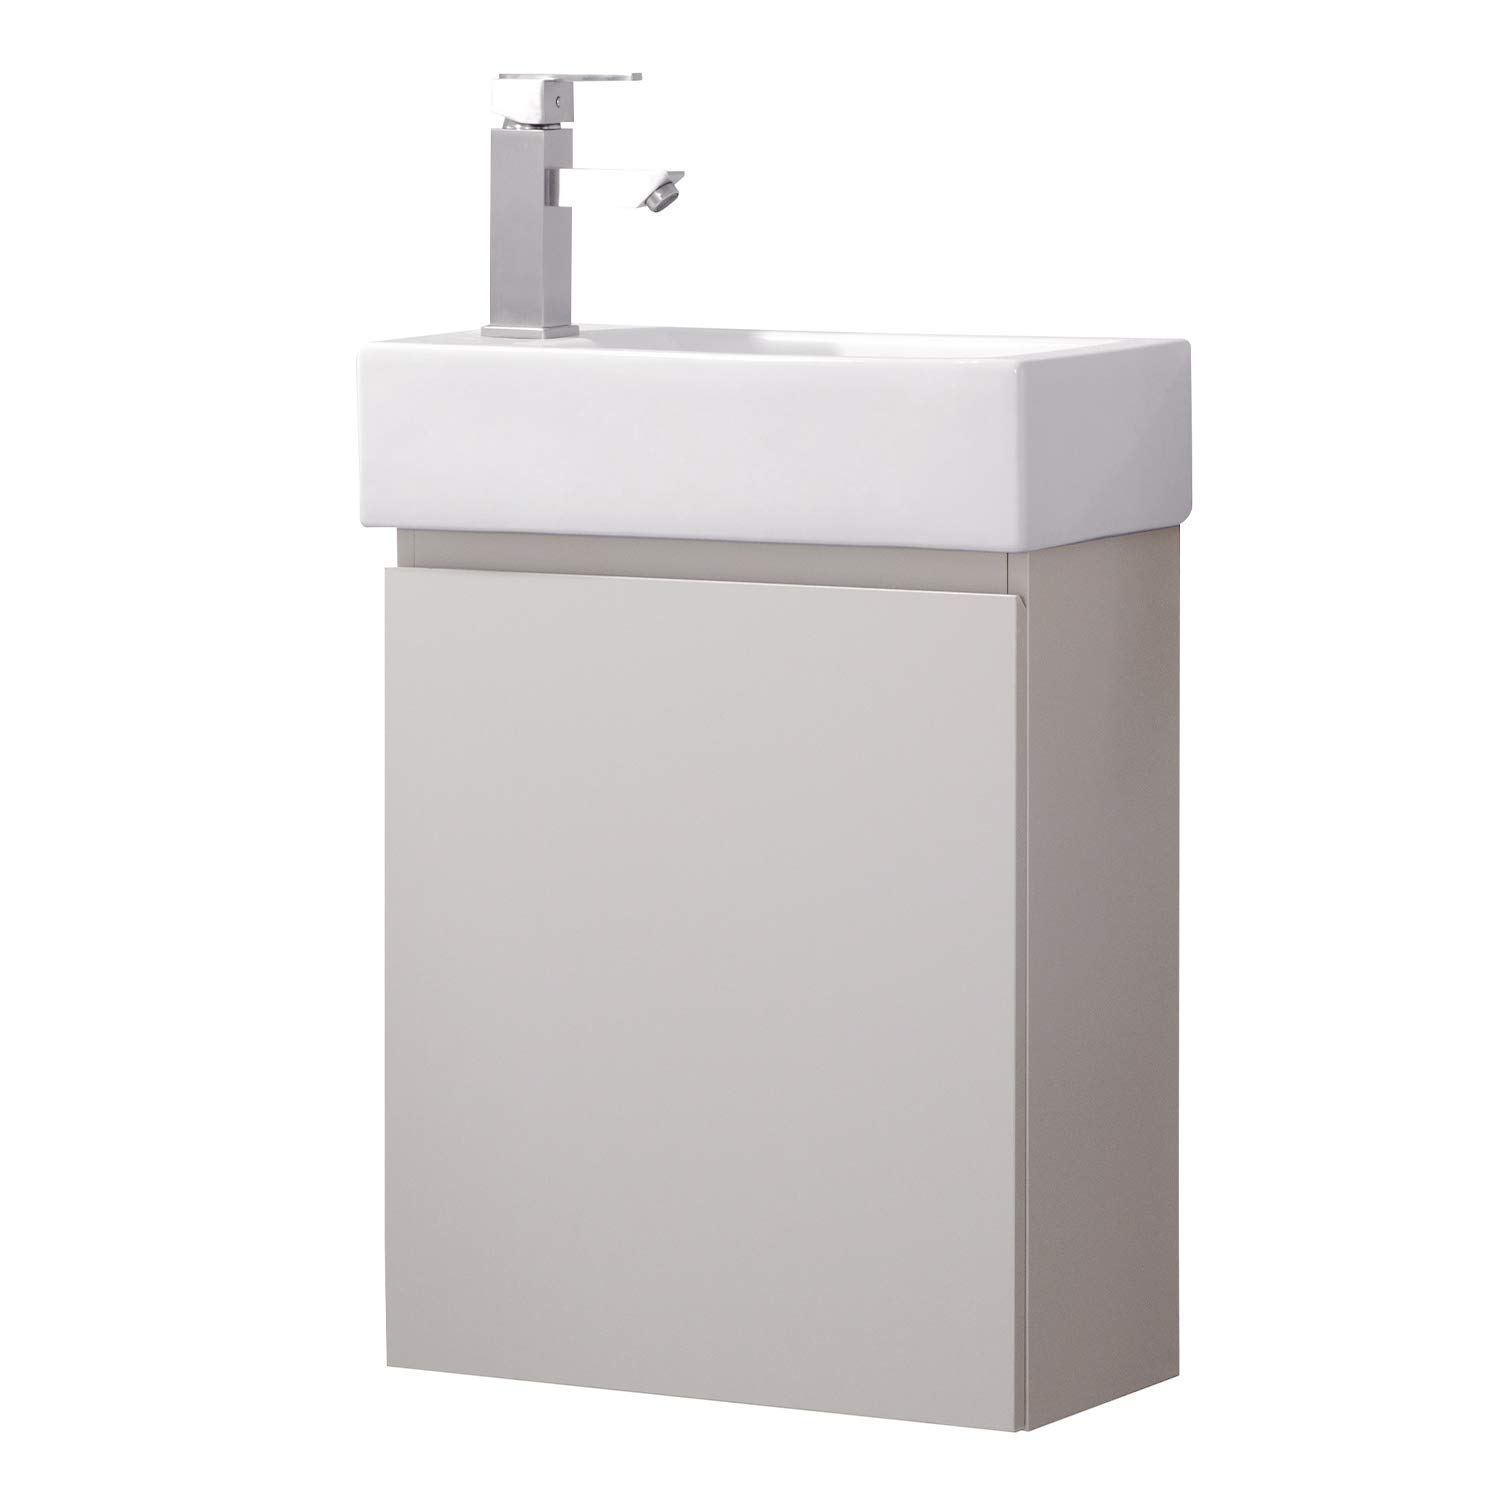 Luca Kitchen & Bath LC20KGP Nova 20'' Bathroom Vanity with Sink in Dove Gray, Wall Hung Style, Made with Hardwood and Integrated Porcelain Top,